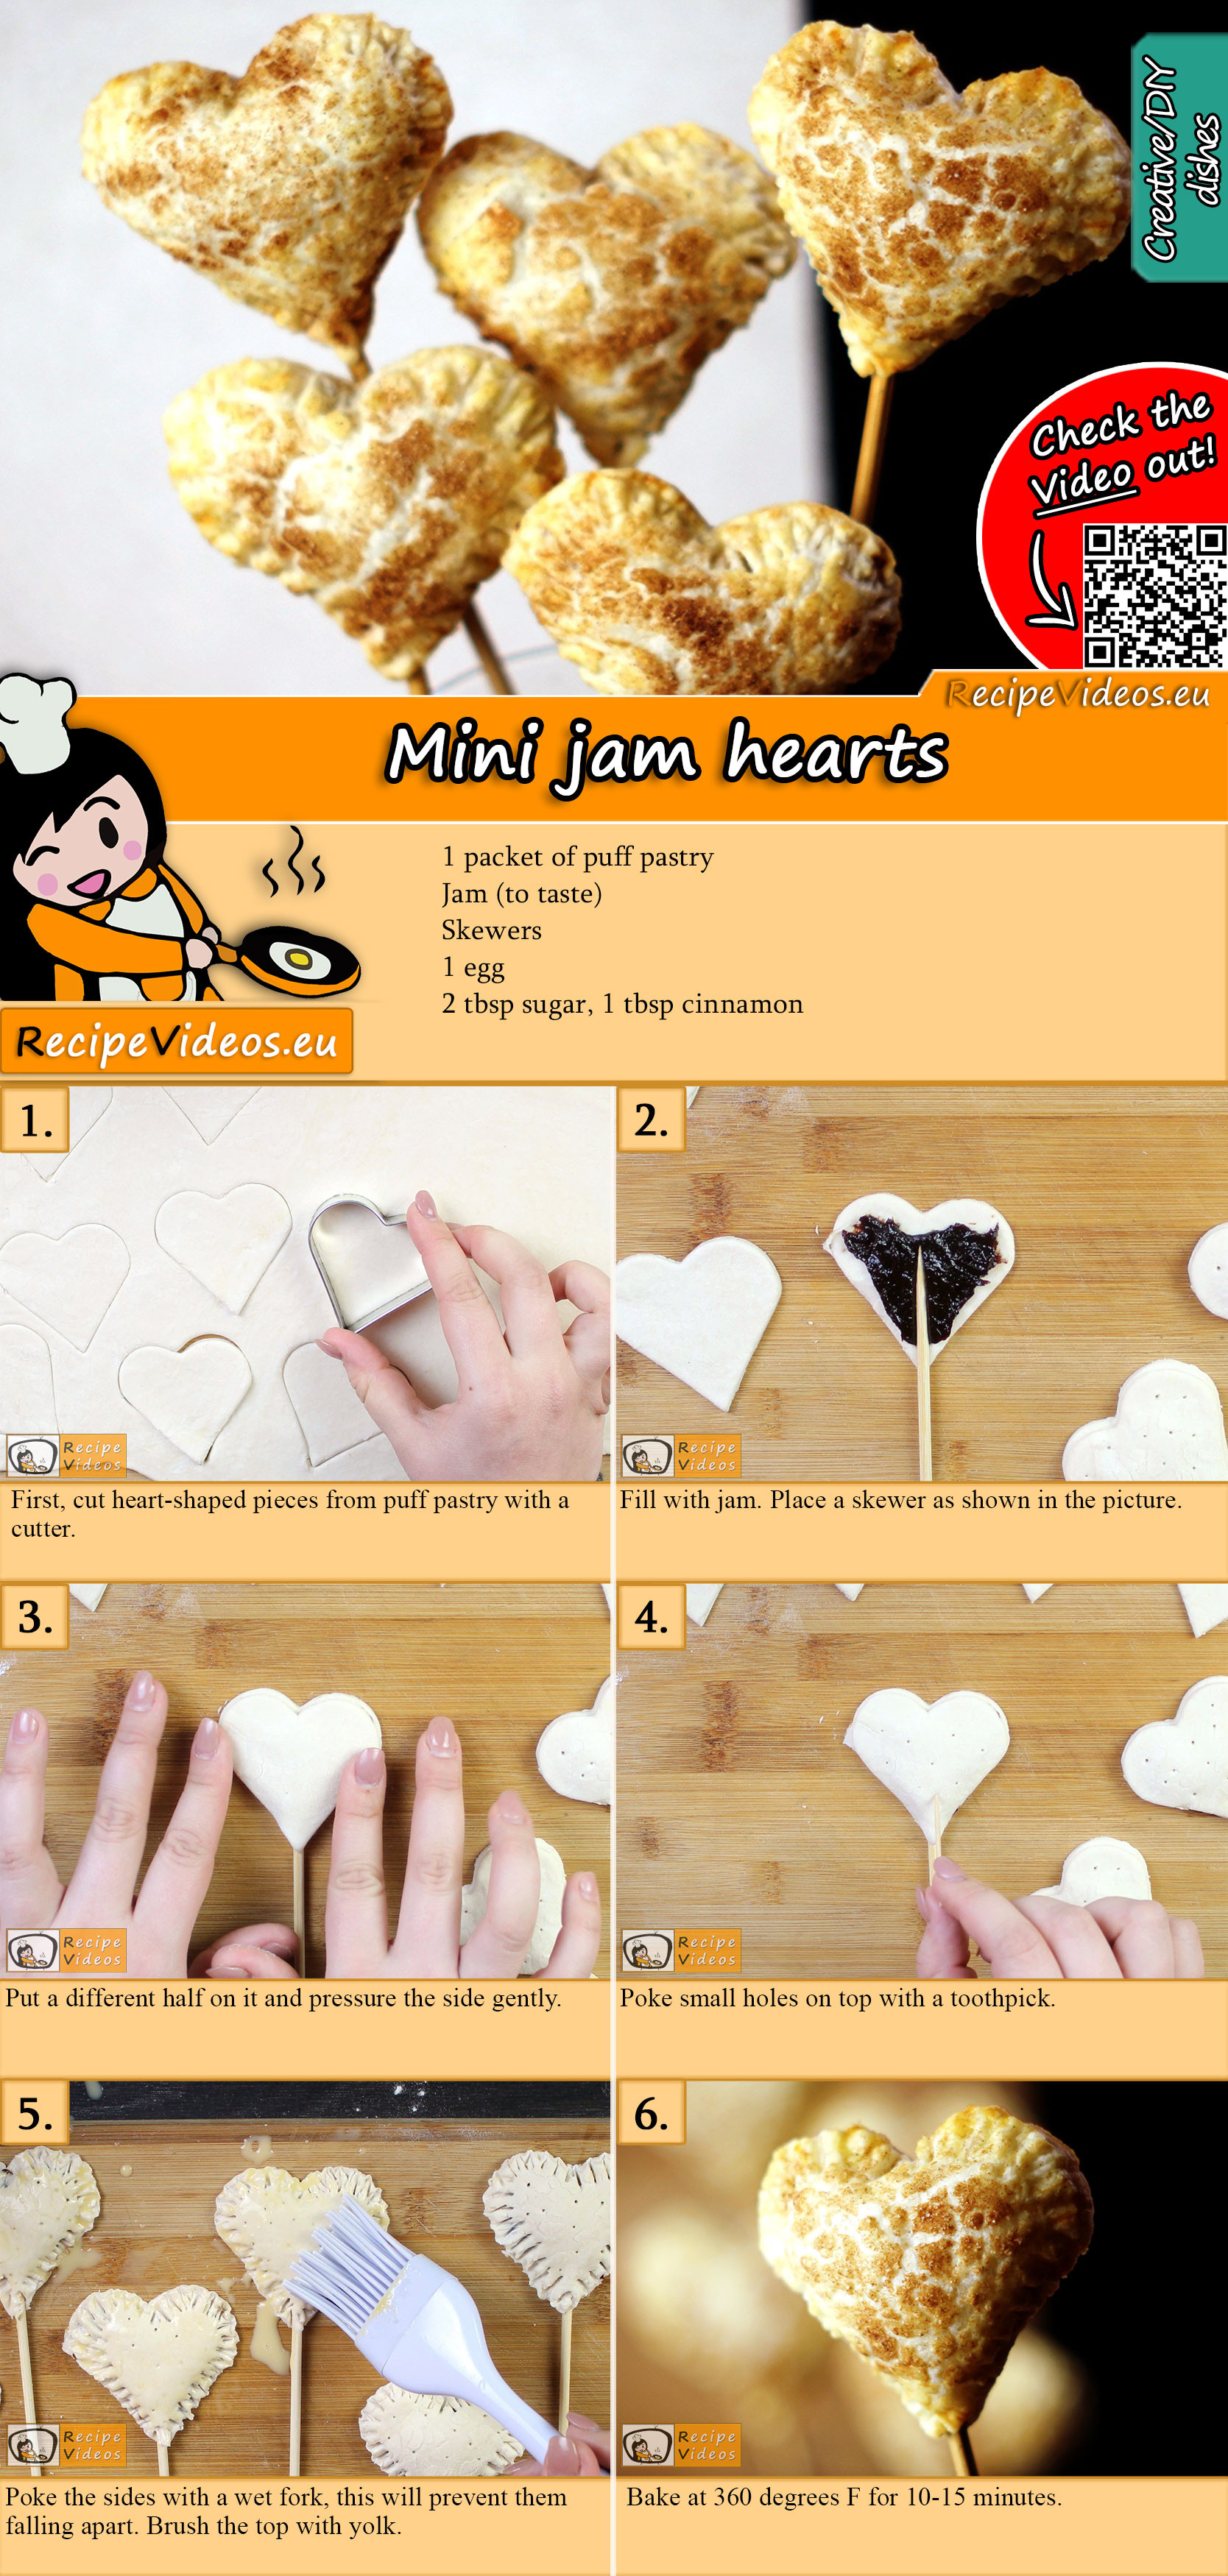 Mini jam hearts recipe with video